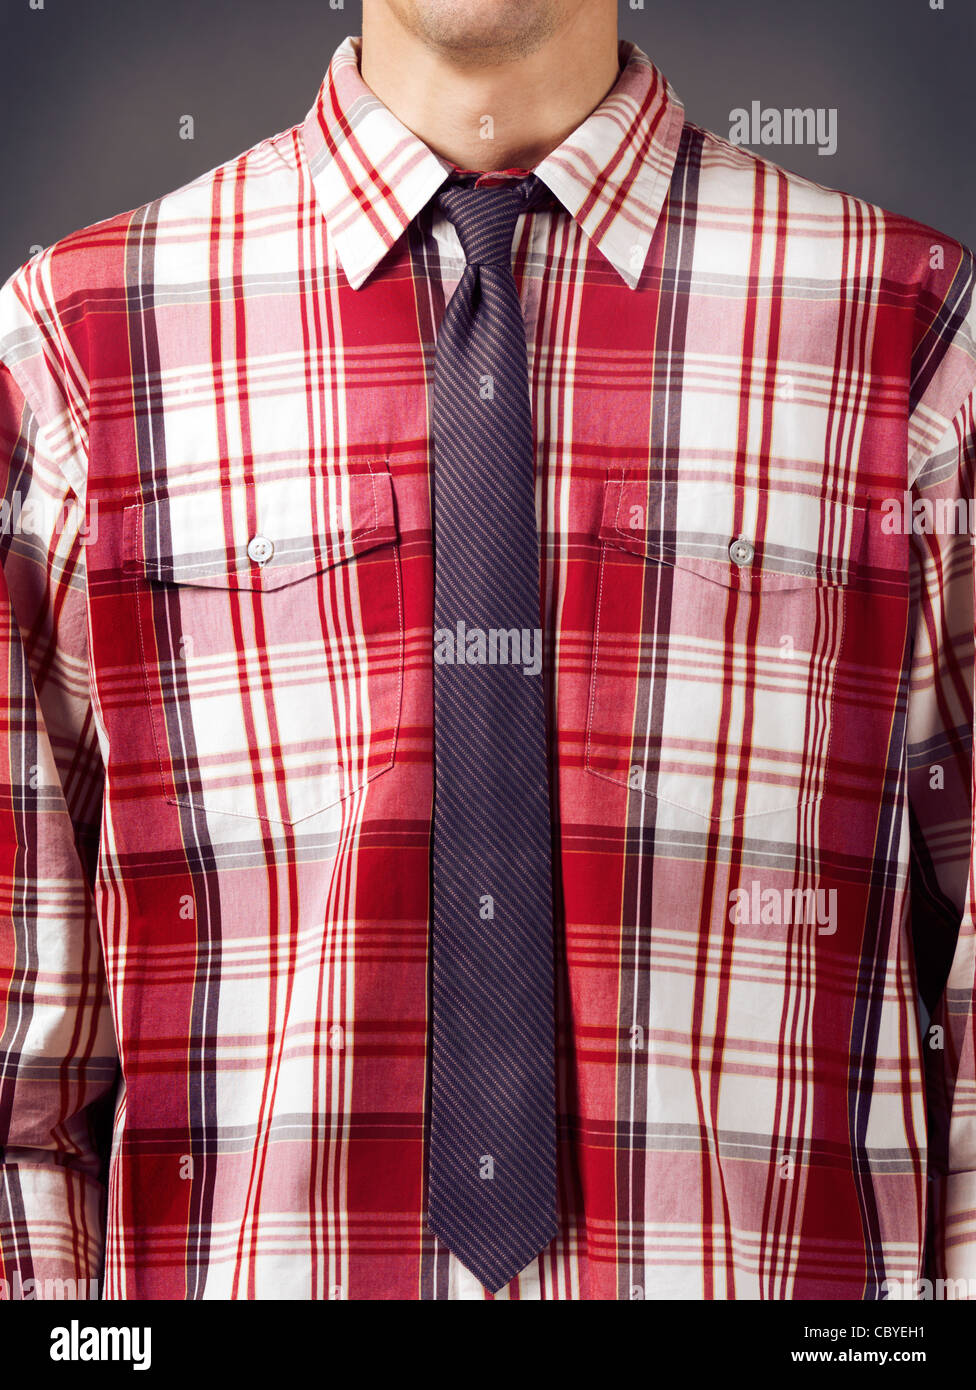 Closeup of a man wearing fancy red tartan shirt with a skinny stripy necktie. - Stock Image